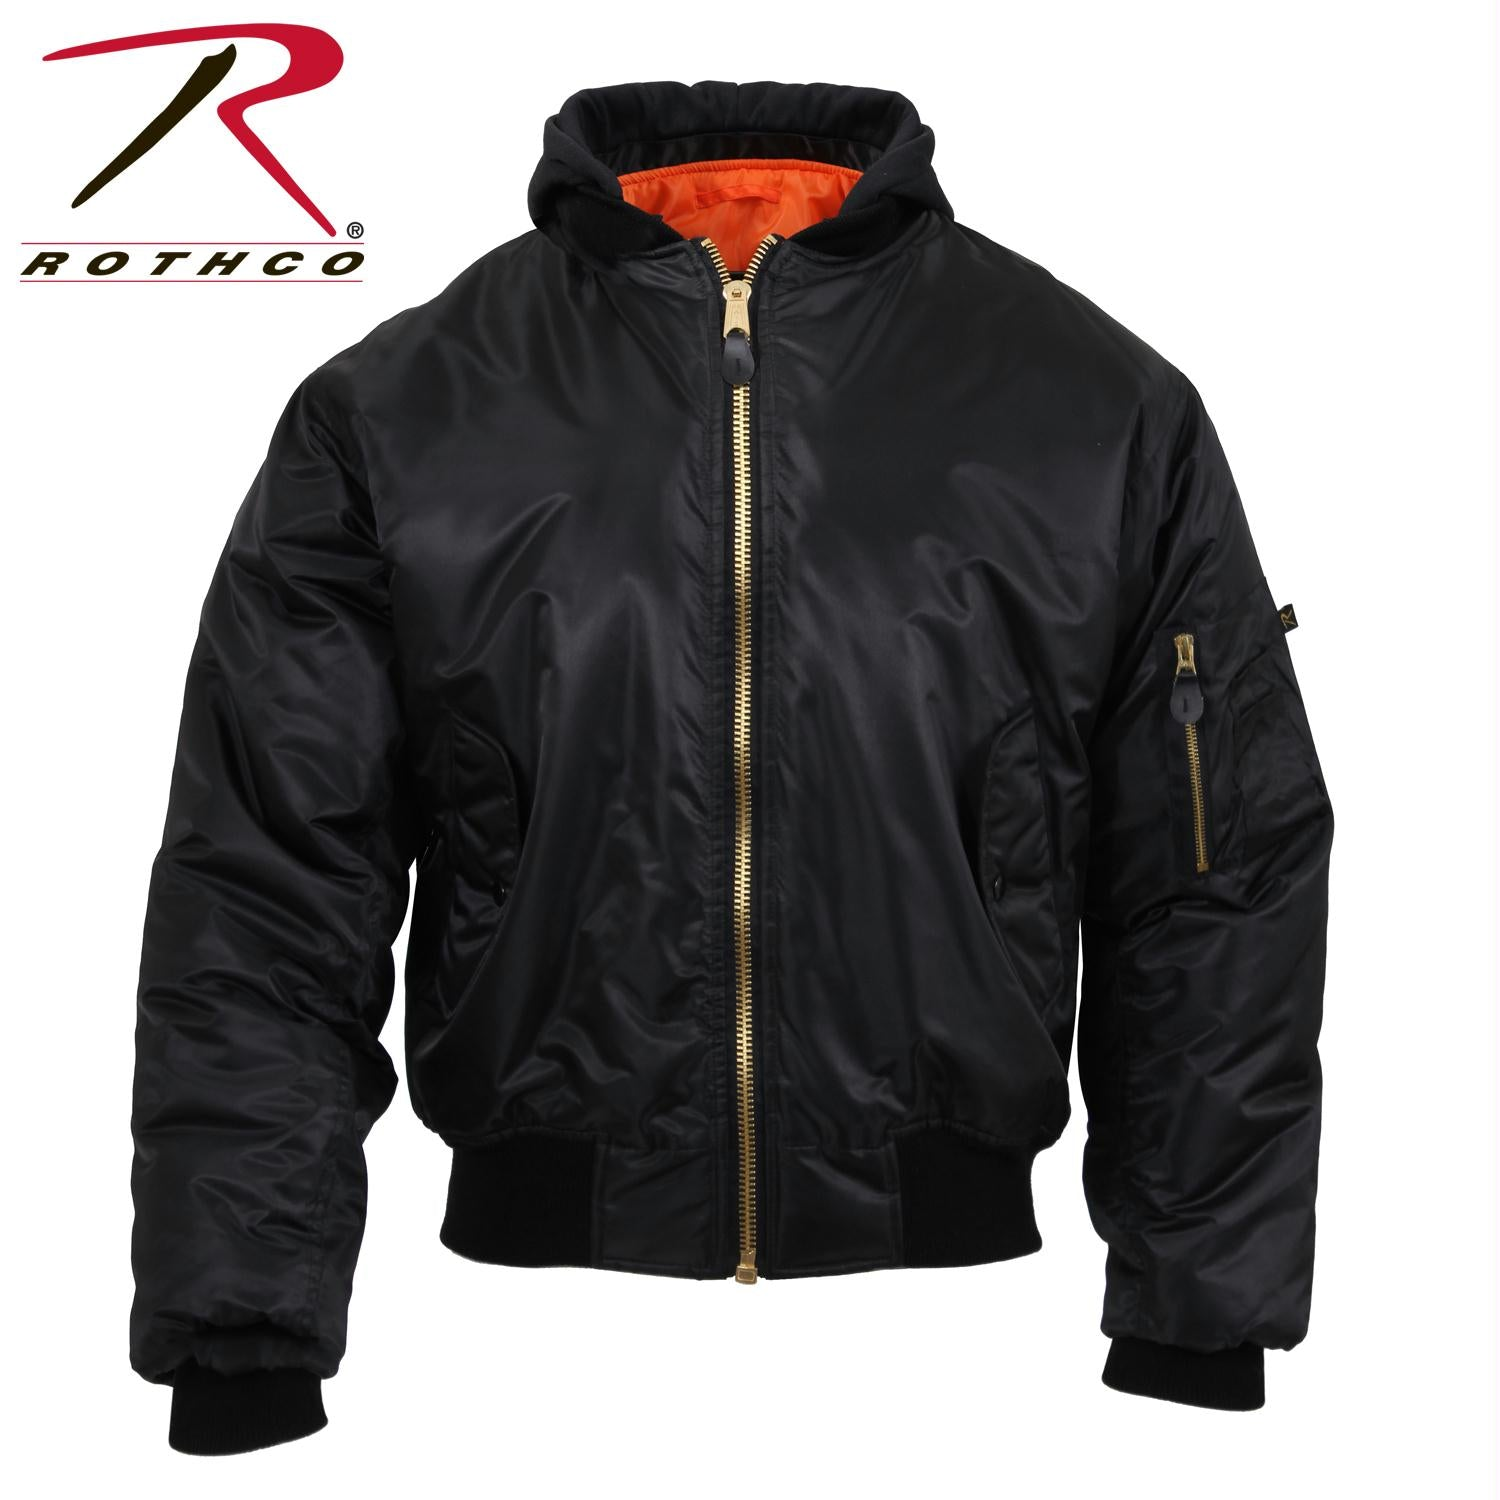 Rothco Hooded MA-1 Flight Jacket - Black / 3XL